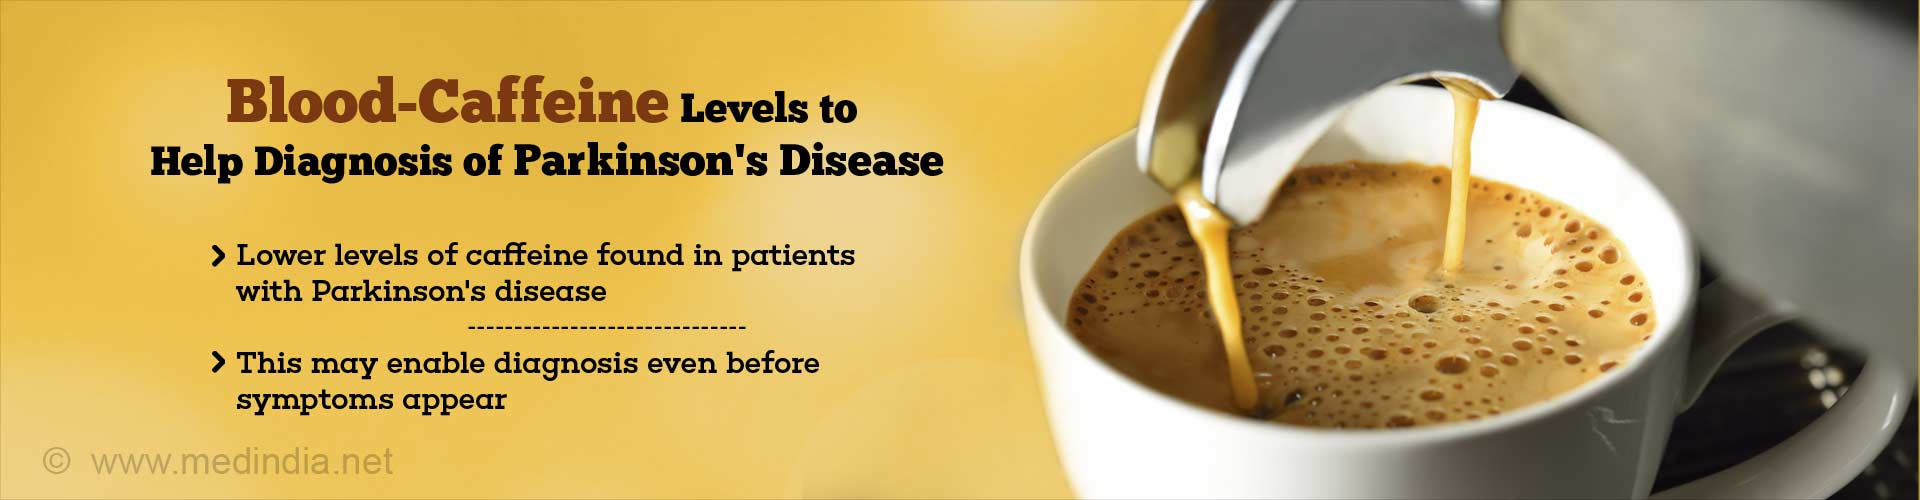 Blood-caffeine levels to help diagnosis of Parkinson''s Disease - Lower levels of caffeine found in patients with Parkinson''s disease - This may enable diagnosis even before symptoms appear